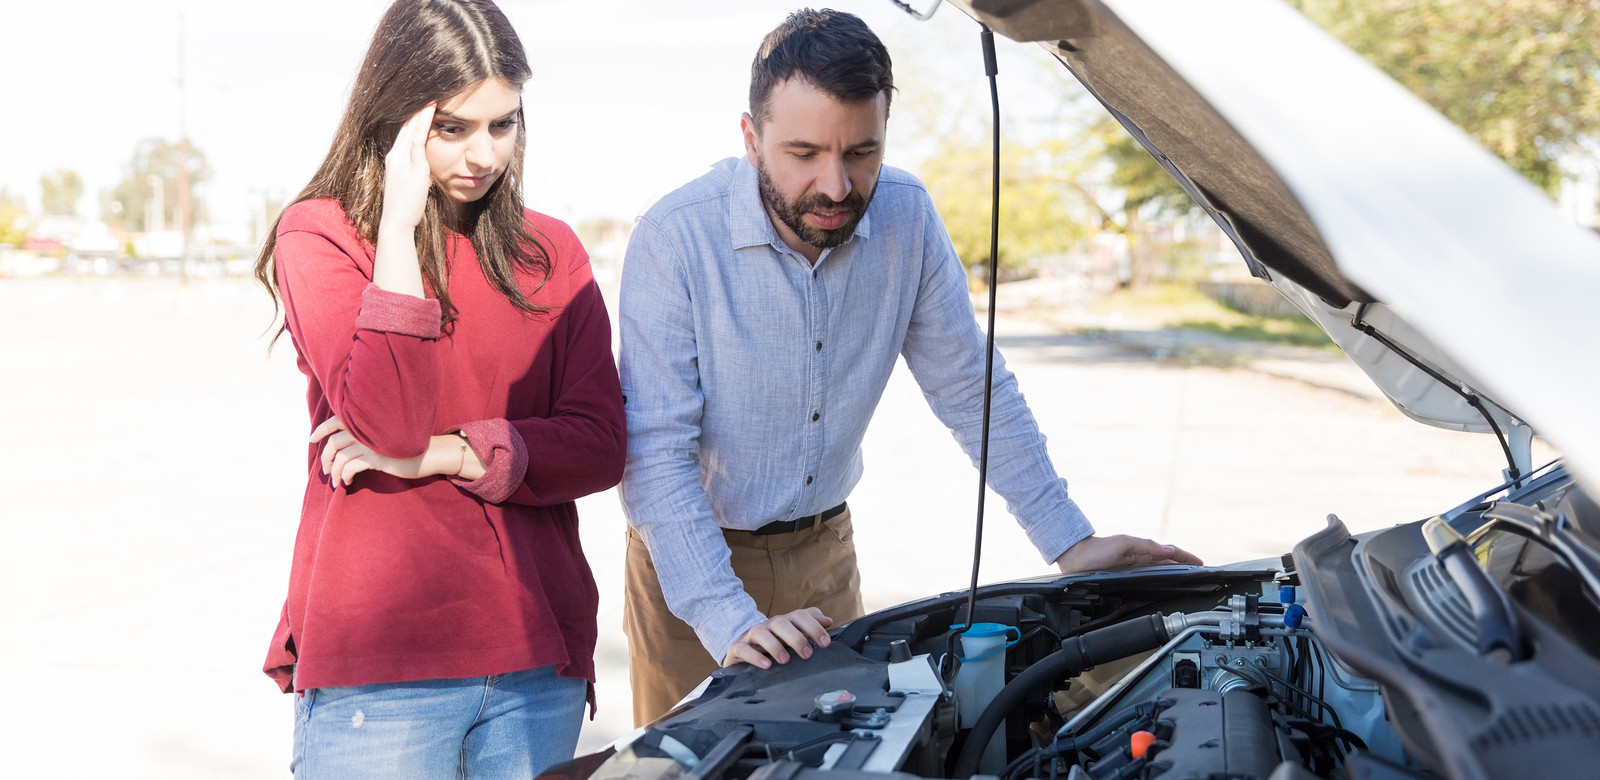 Worried-looking lady and bearded man staring at car engine